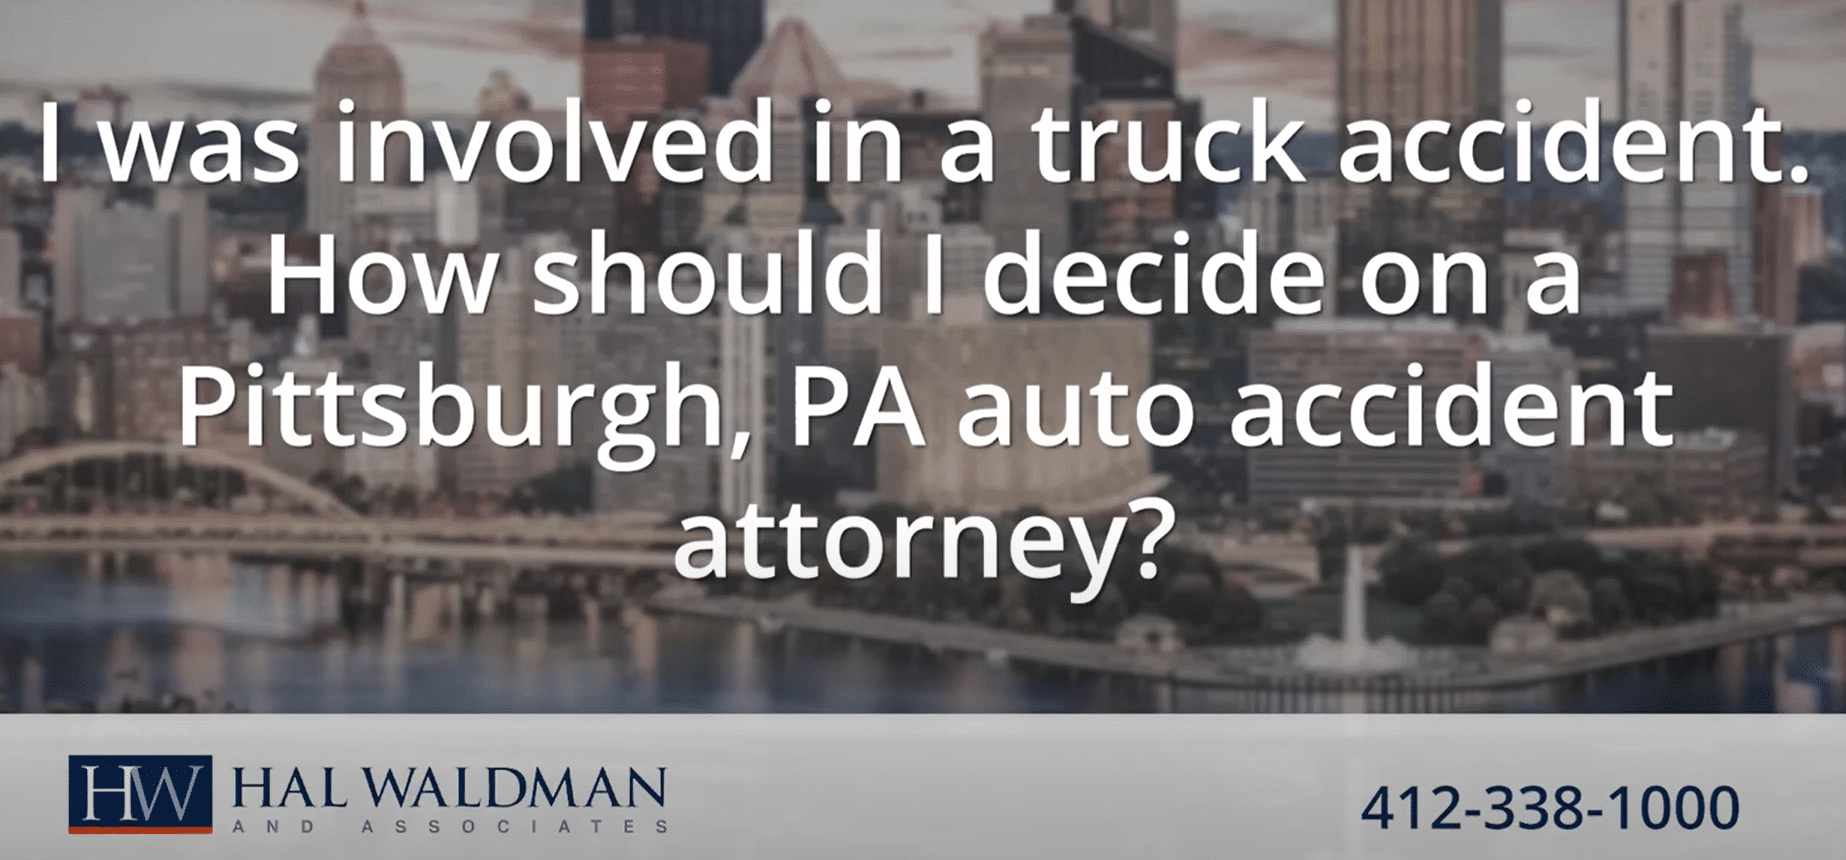 how should I decide on a Pittsburgh personal injury attorney